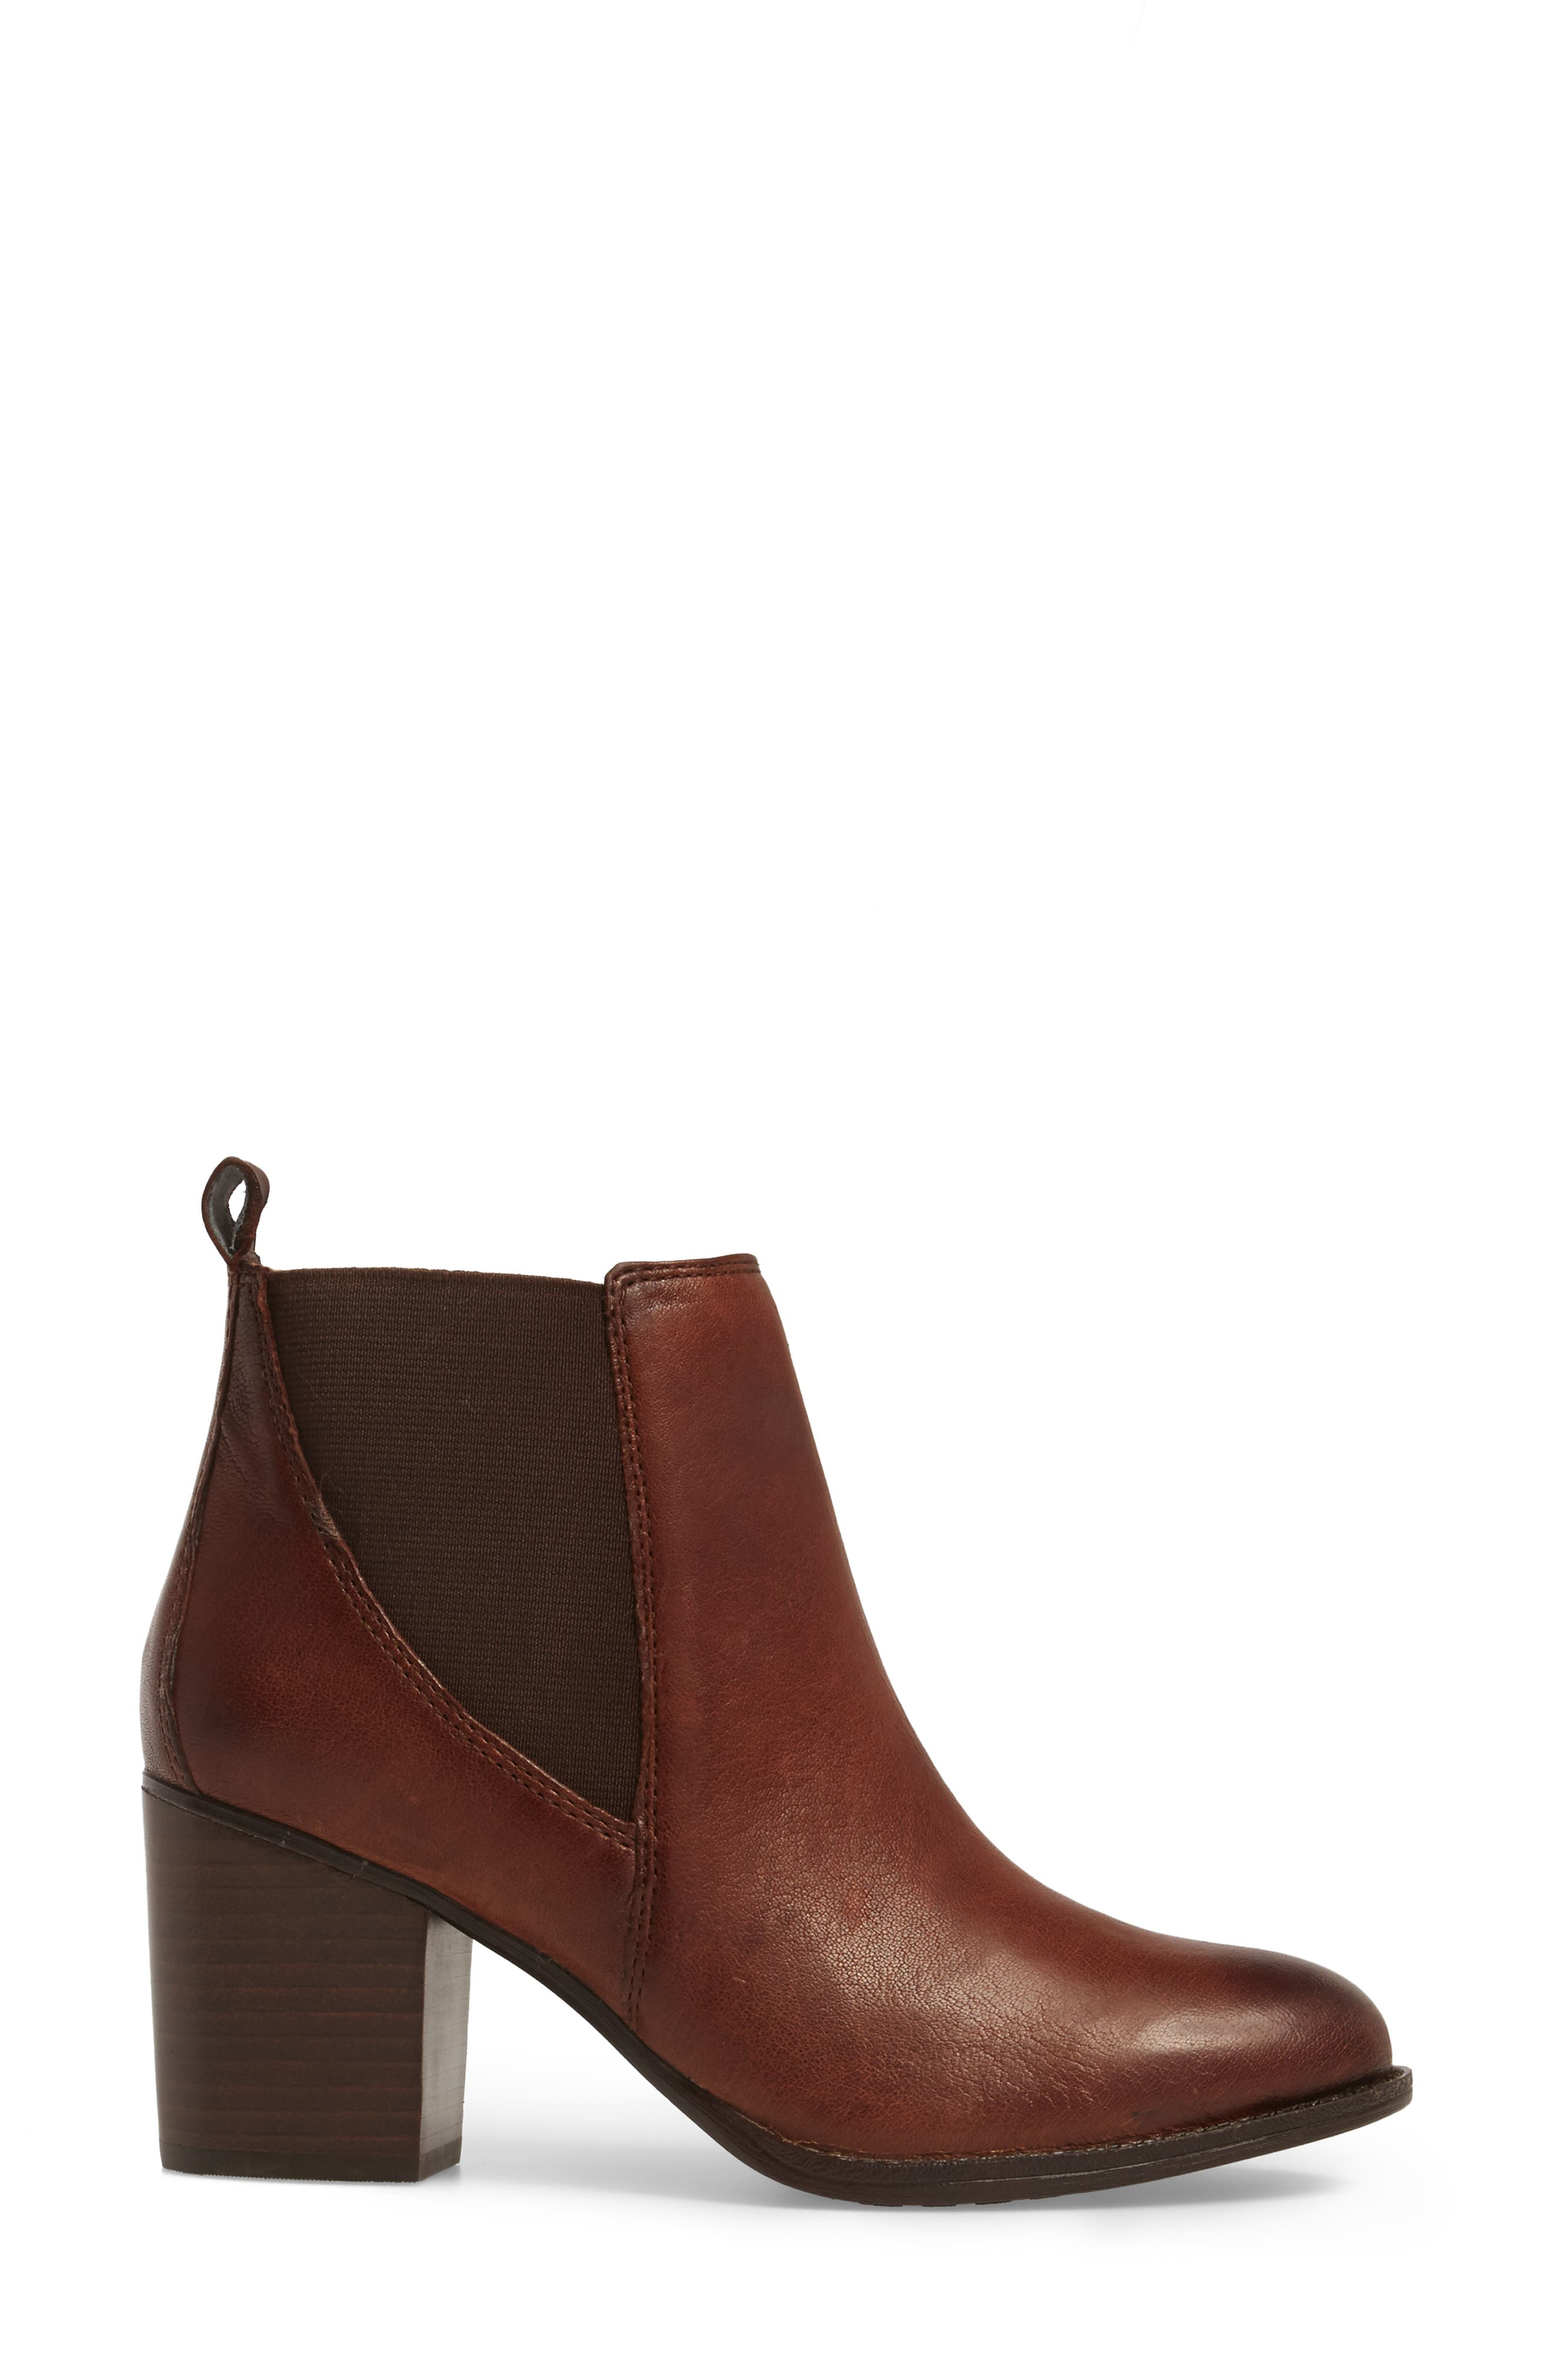 Welling Bootie,                             Alternate thumbnail 3, color,                             CAFFE LEATHER